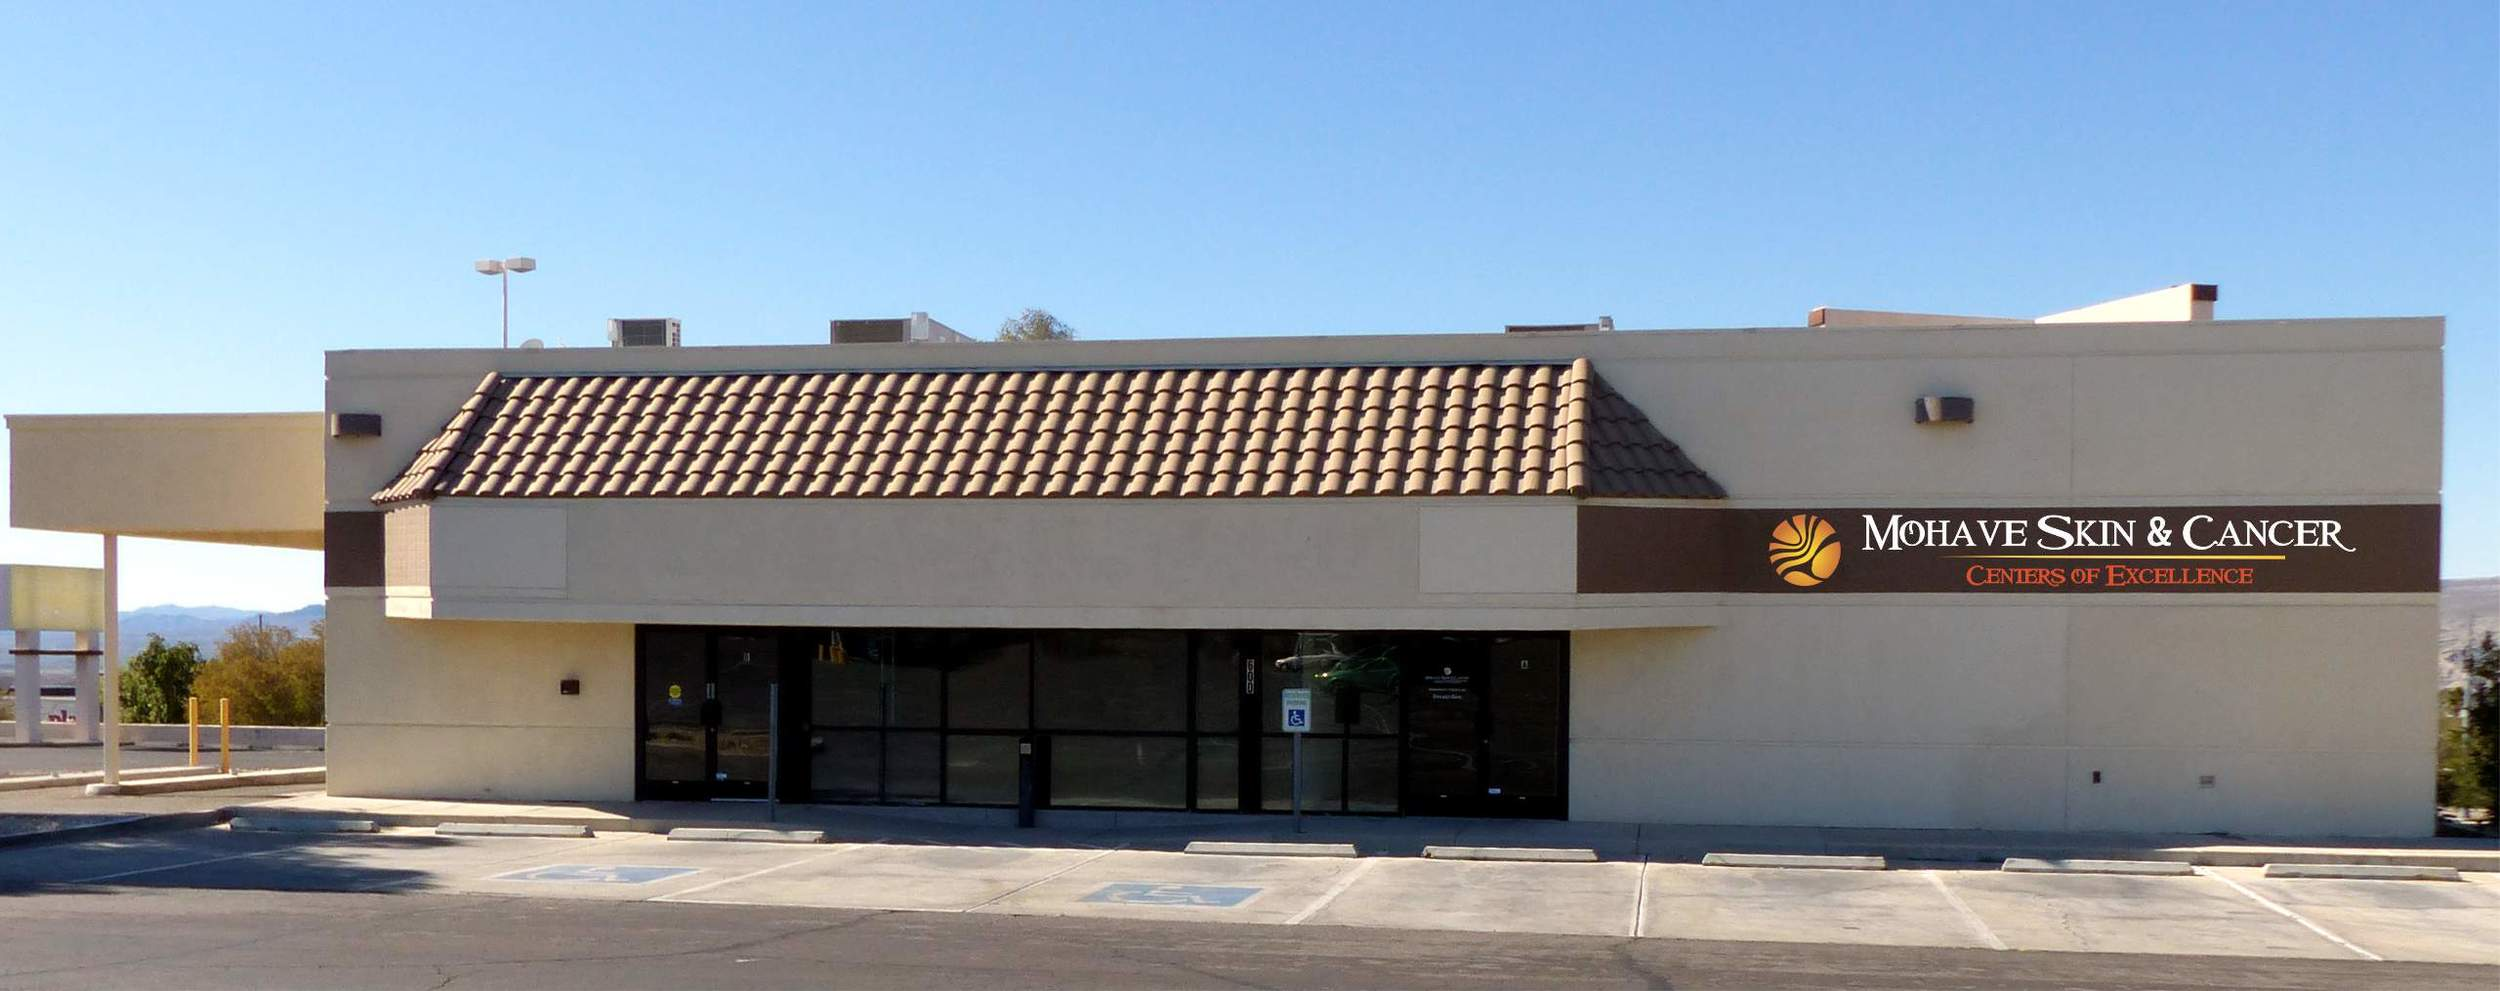 2350 Miracle Mile Rd #600A, Bullhead City, AZ 86442